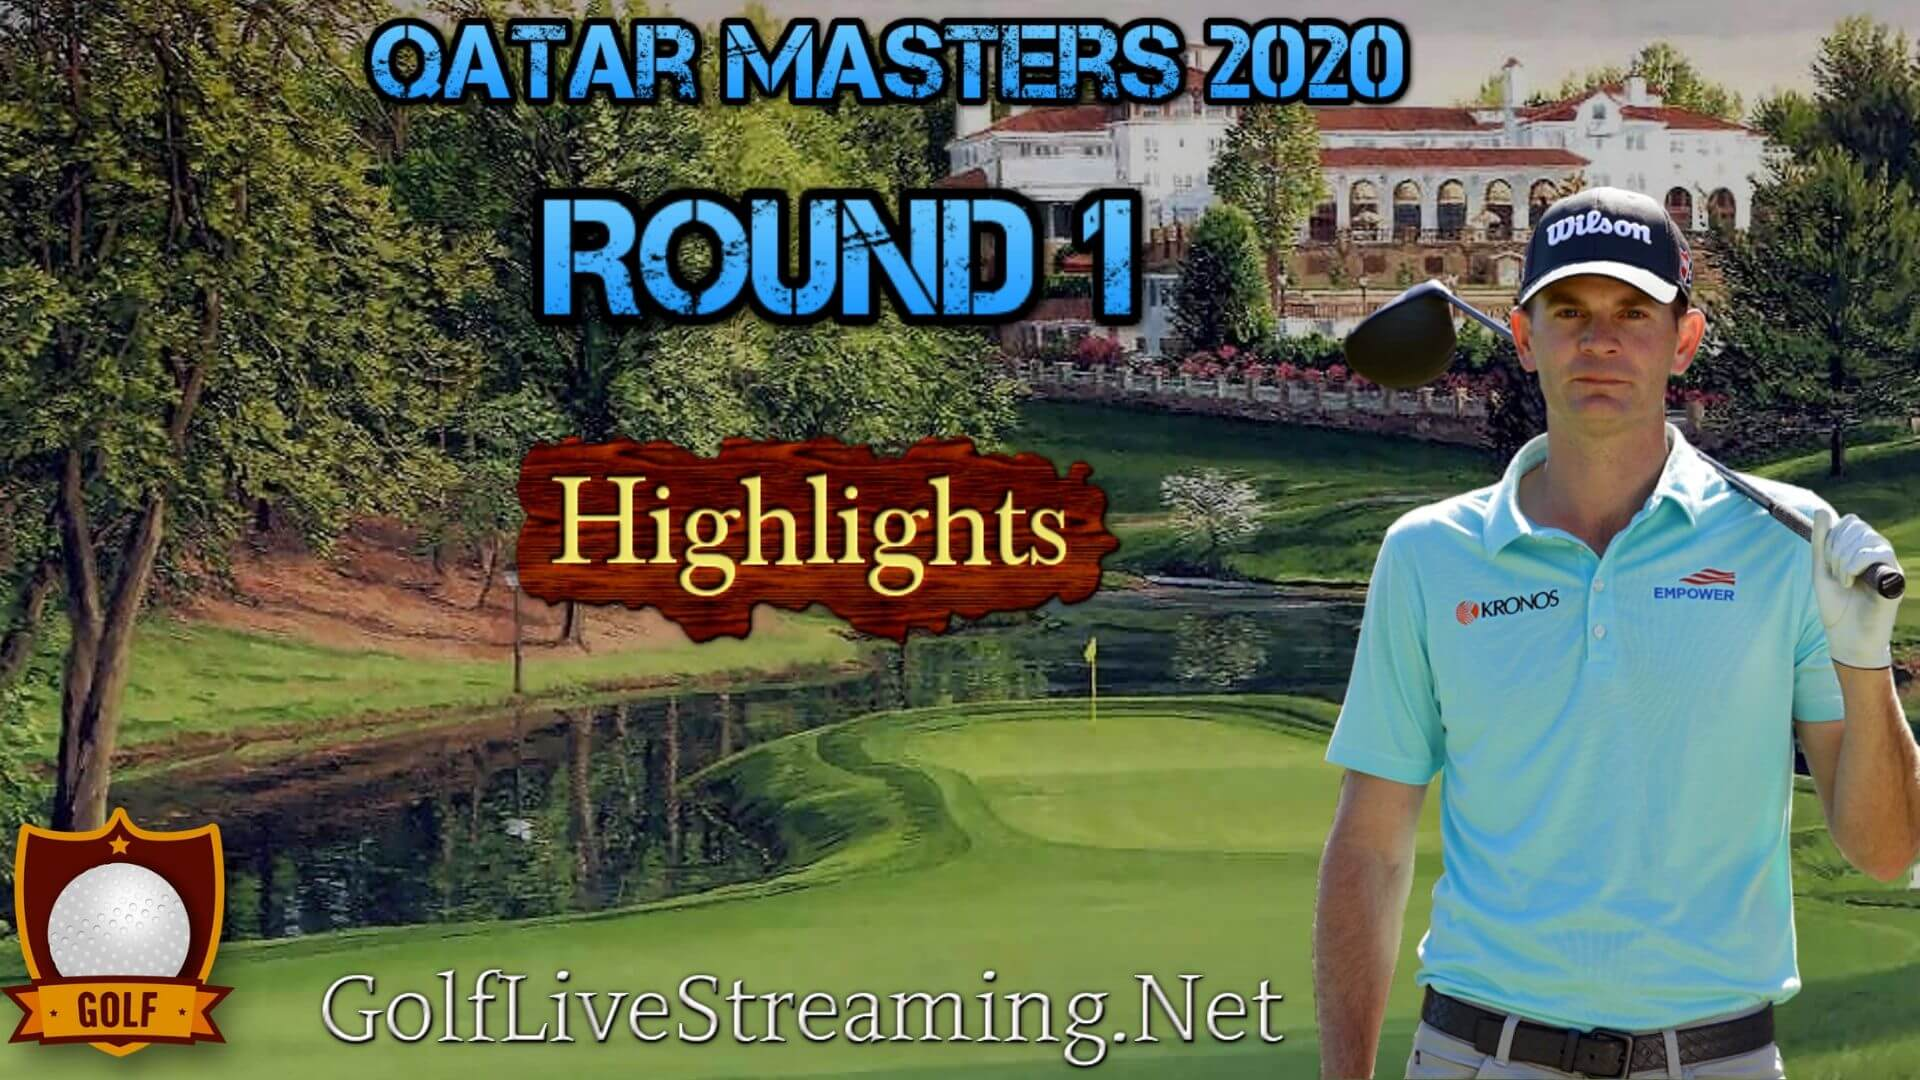 Qatar Masters Rd 1 Highlights 2020